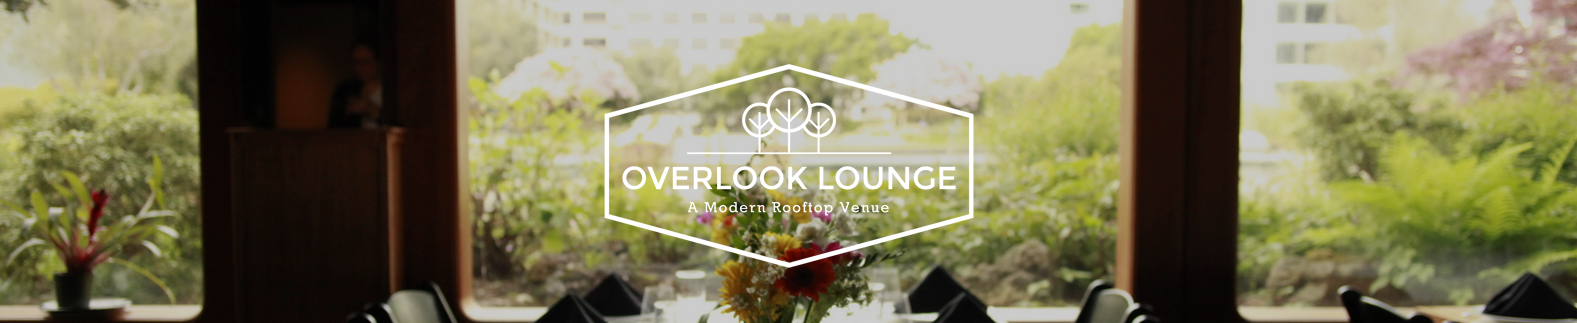 The Overlook Lounge, Oakland, CA logo